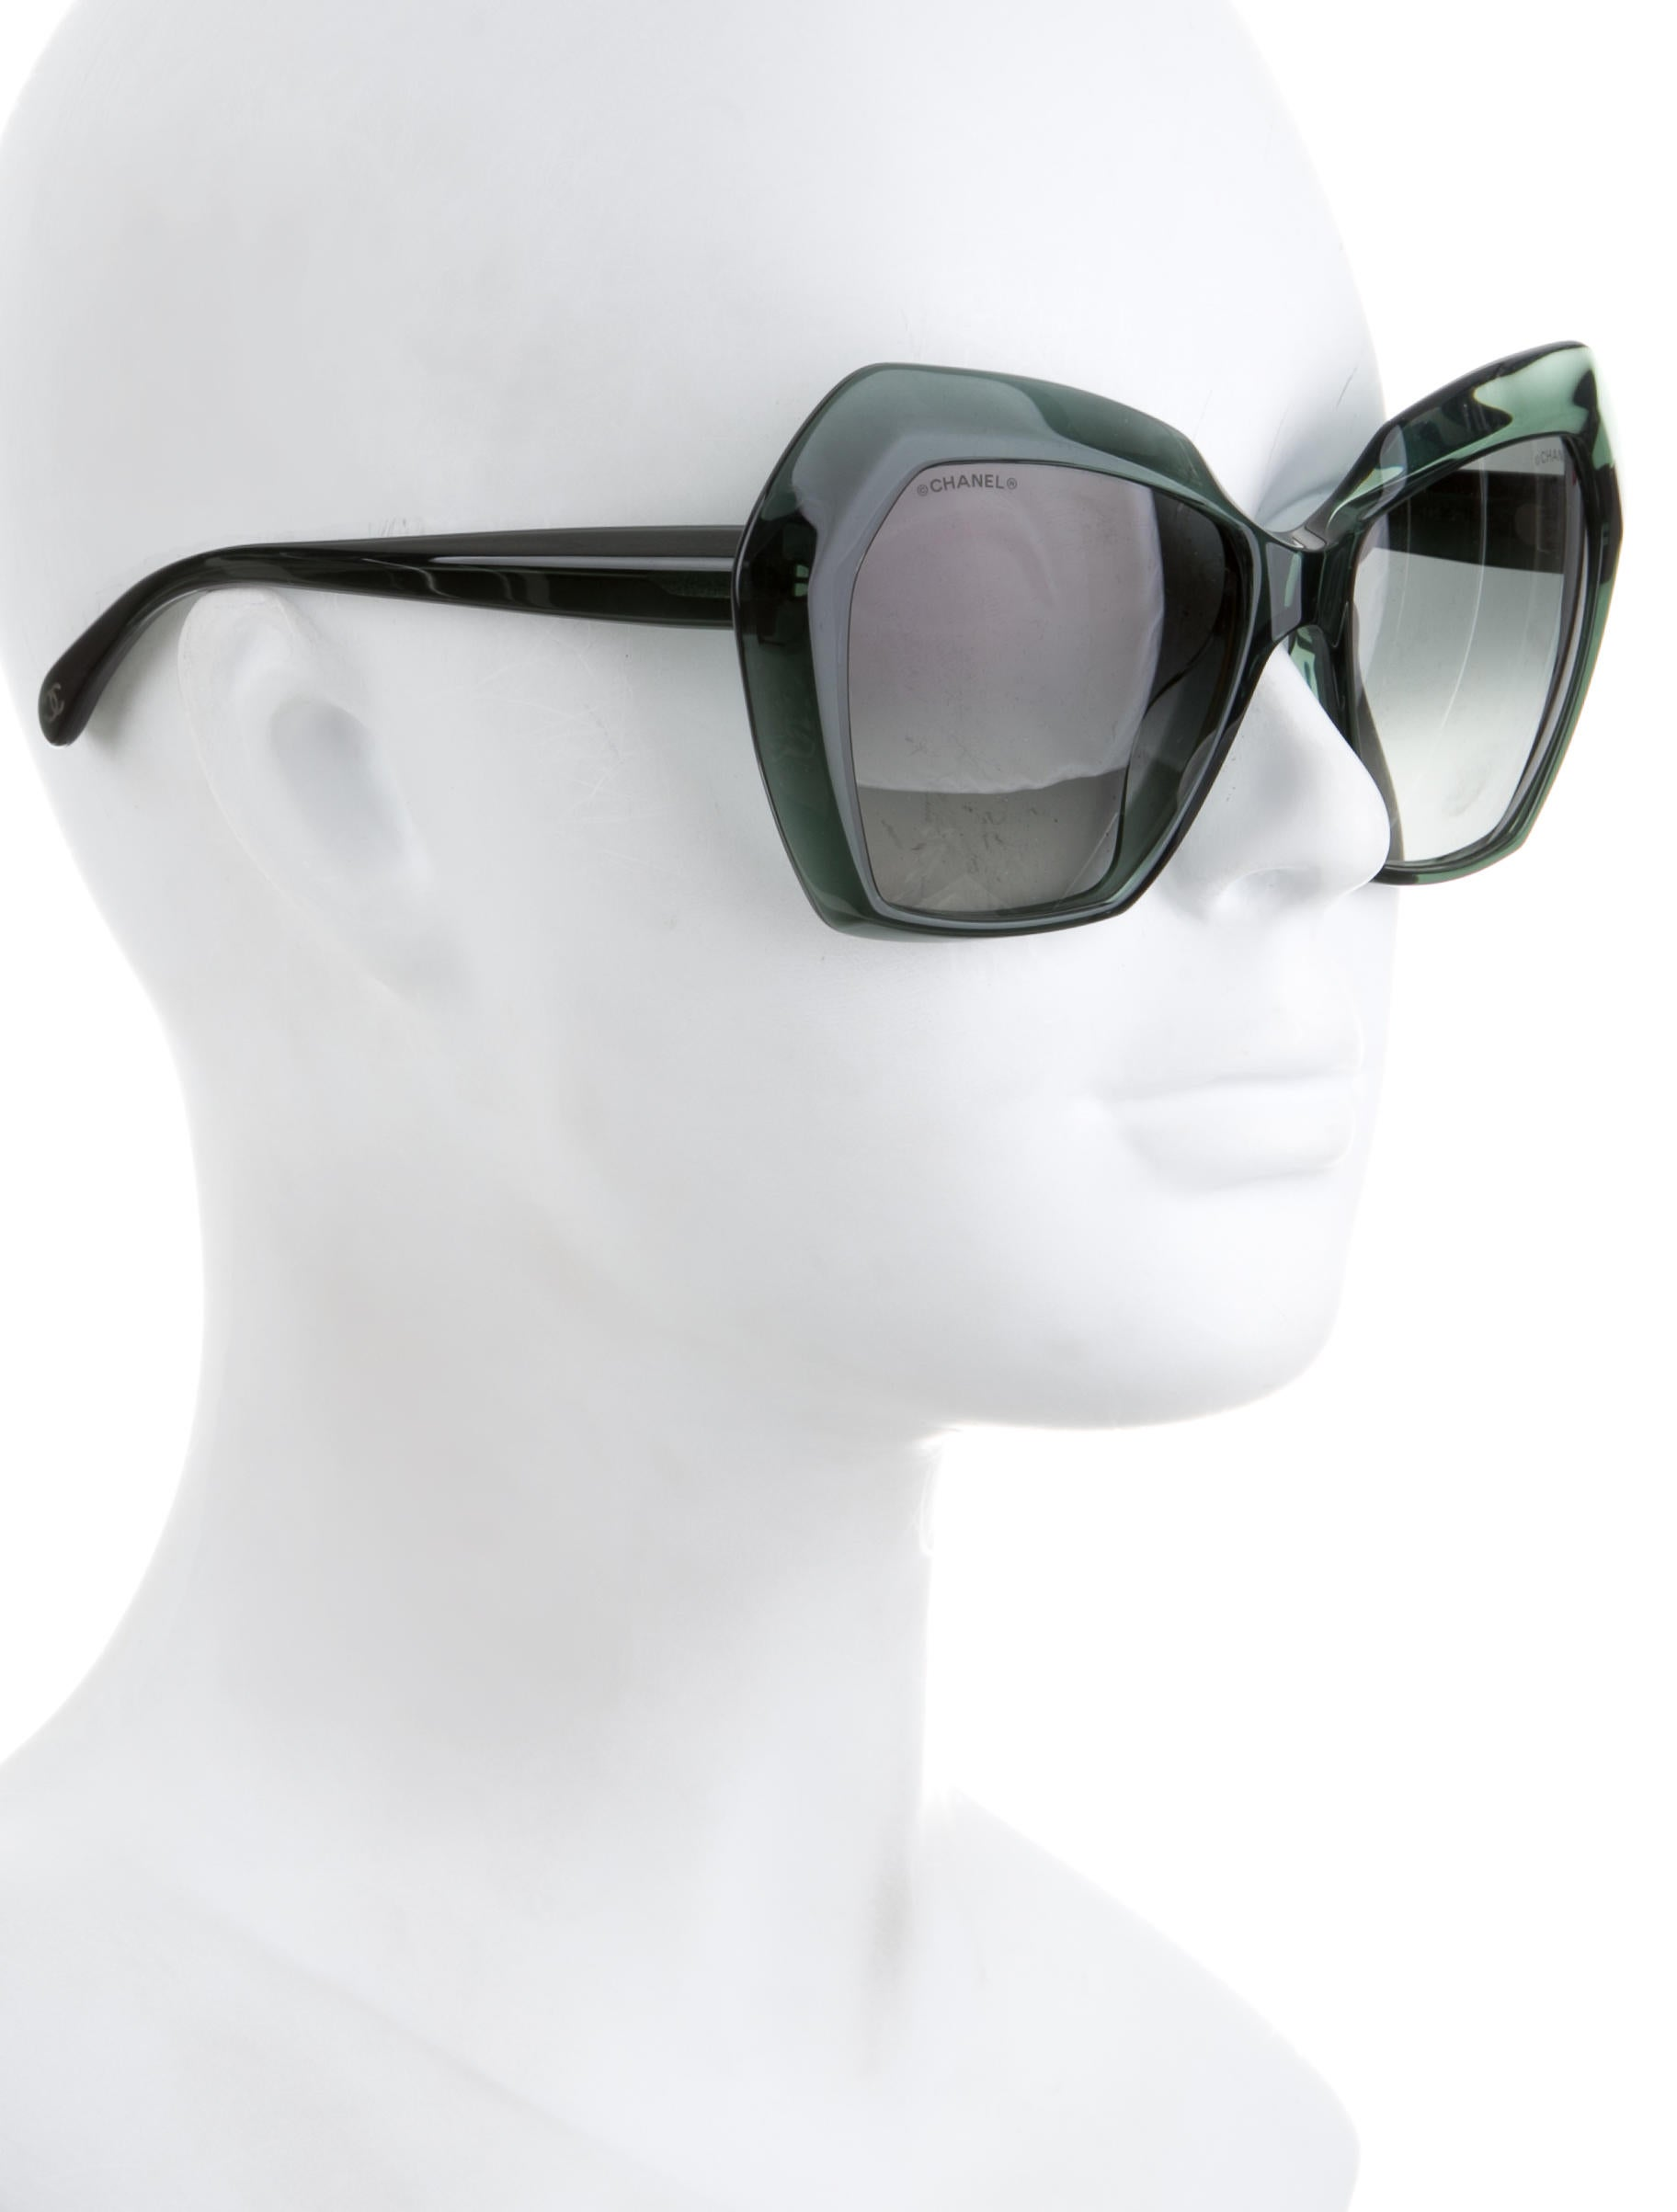 Chanel 2017 Spring Sunglasses w/ Tags